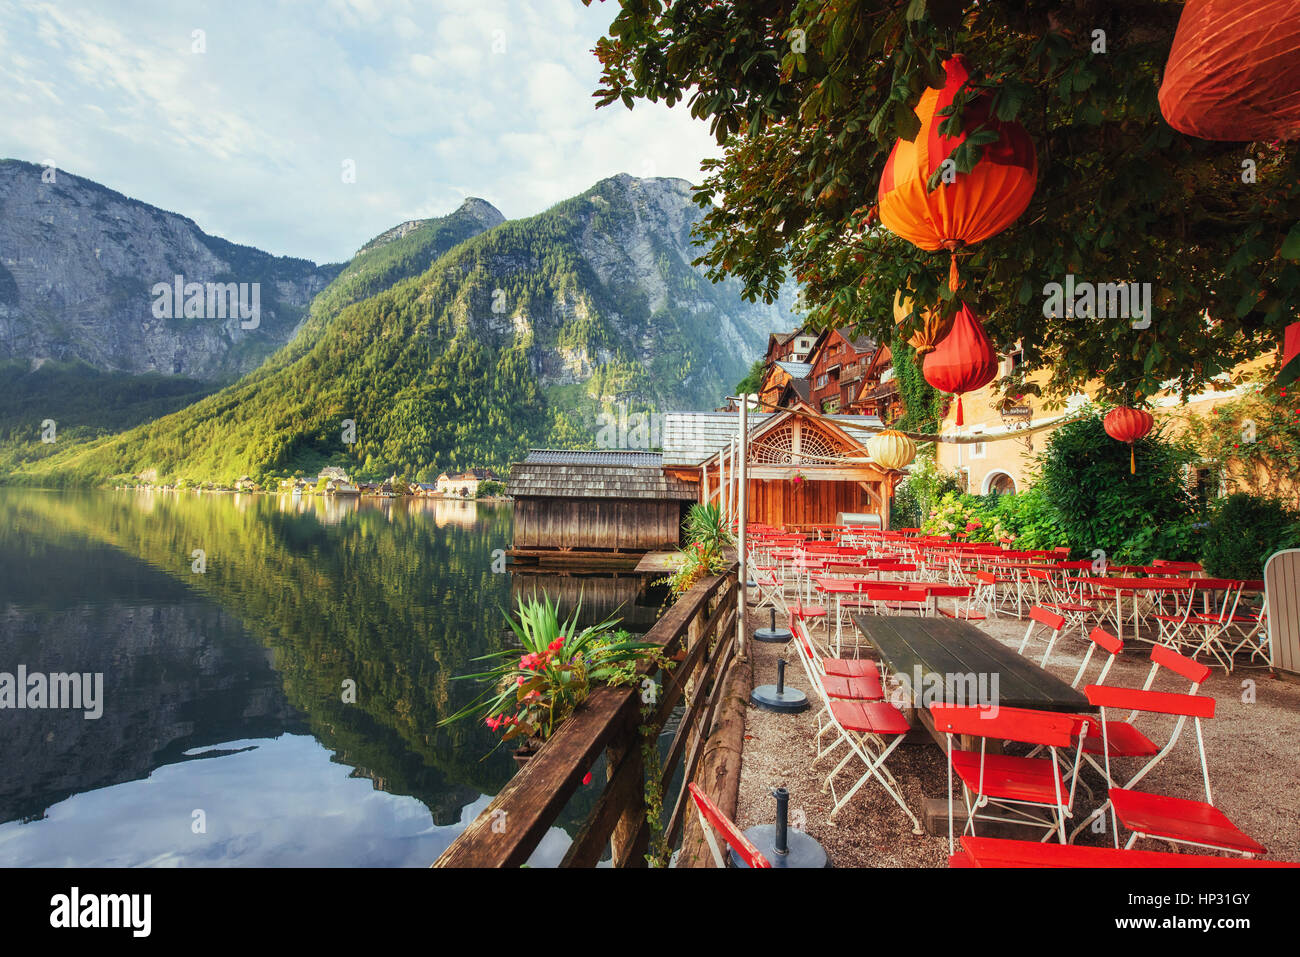 Summer cafe on the beautiful lake between mountains. Alps. Halls - Stock Image